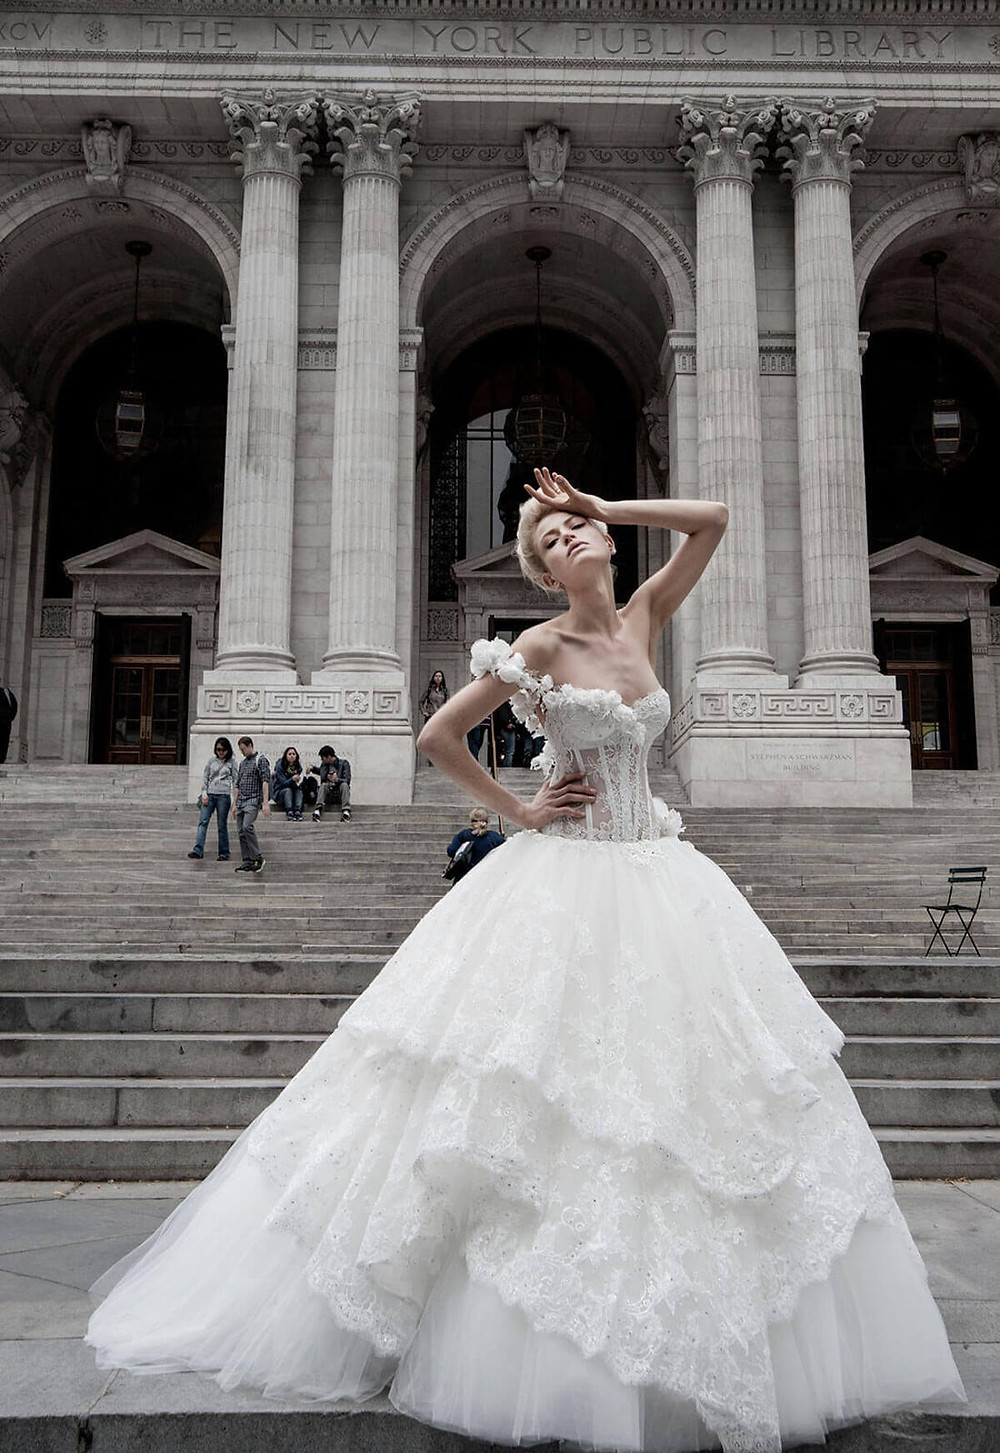 A one shoulder, ball gown wedding dress, with a corset and a large lace skirt